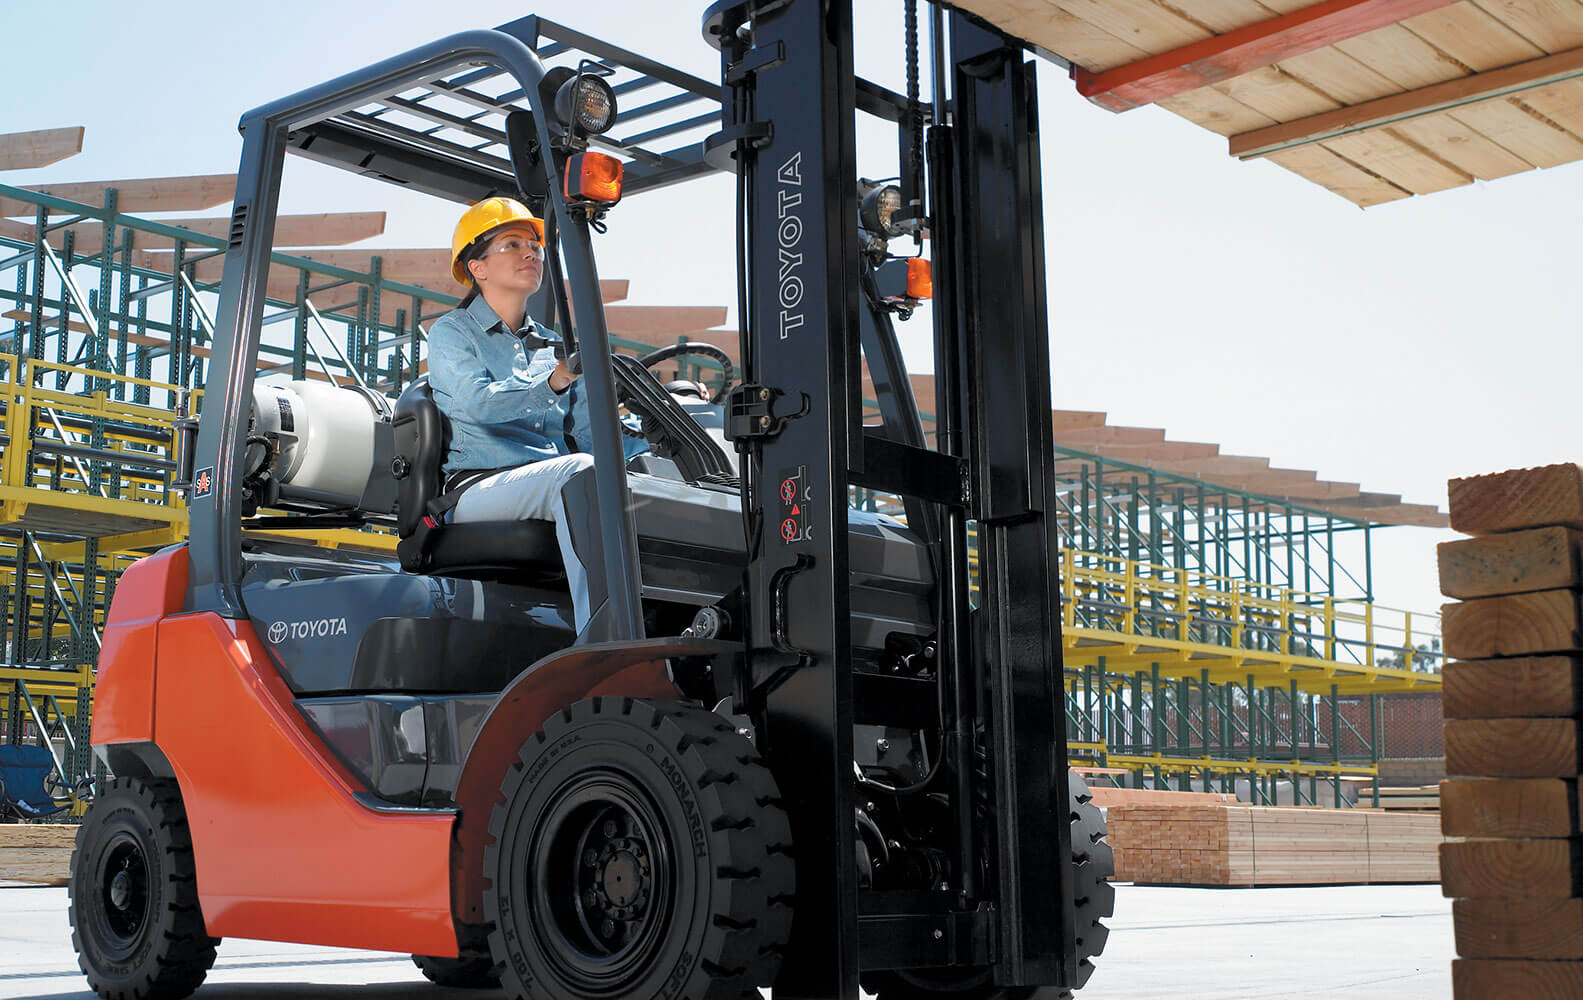 10 Things You Learn In Toyota Forklift Operator Safety Training